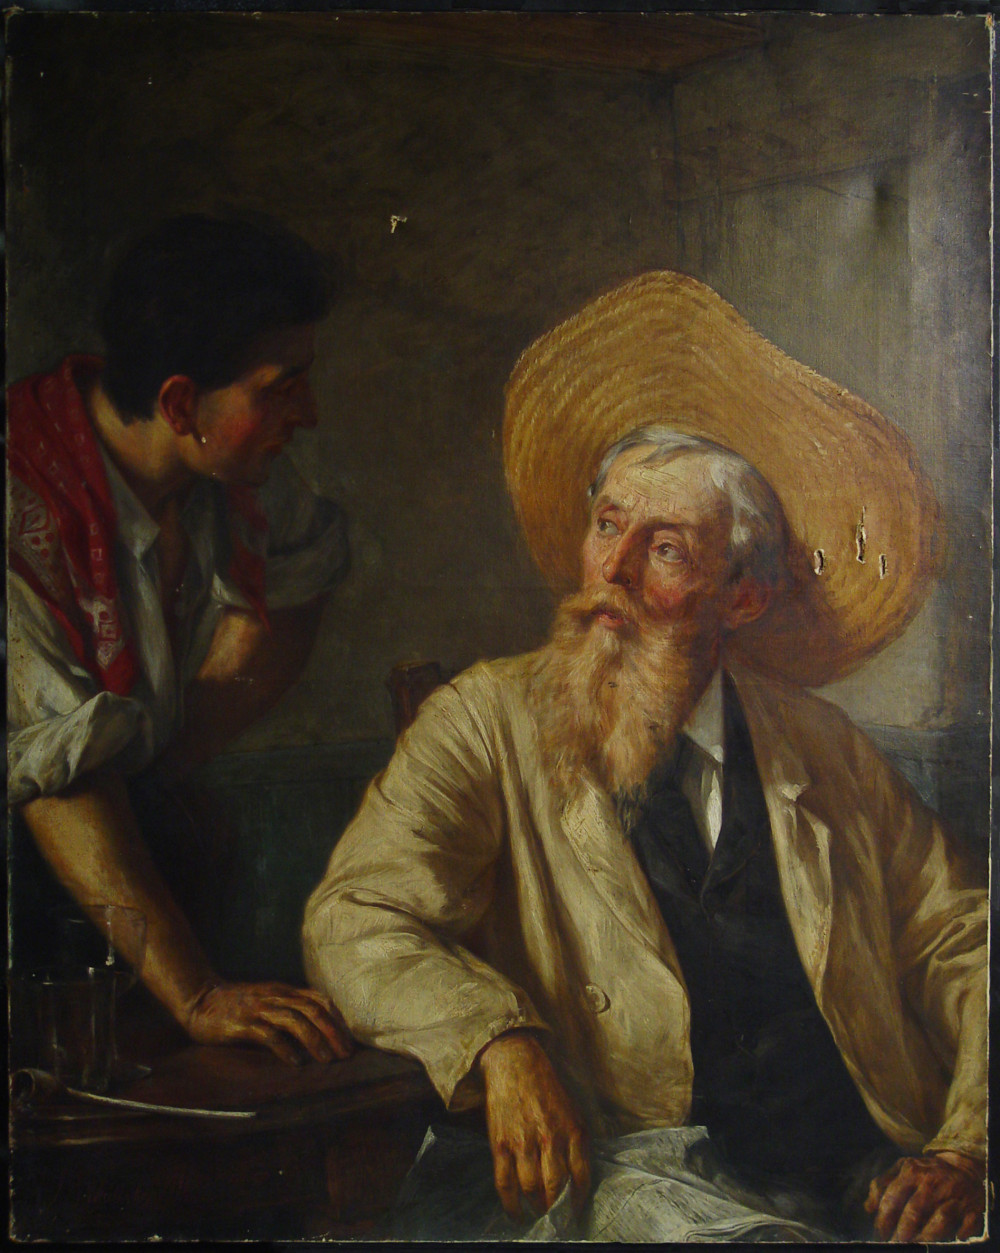 A Difference of Opinion, John Barnard Whittaker (1836-1926), 44 x 34 in., Oil on canvas.